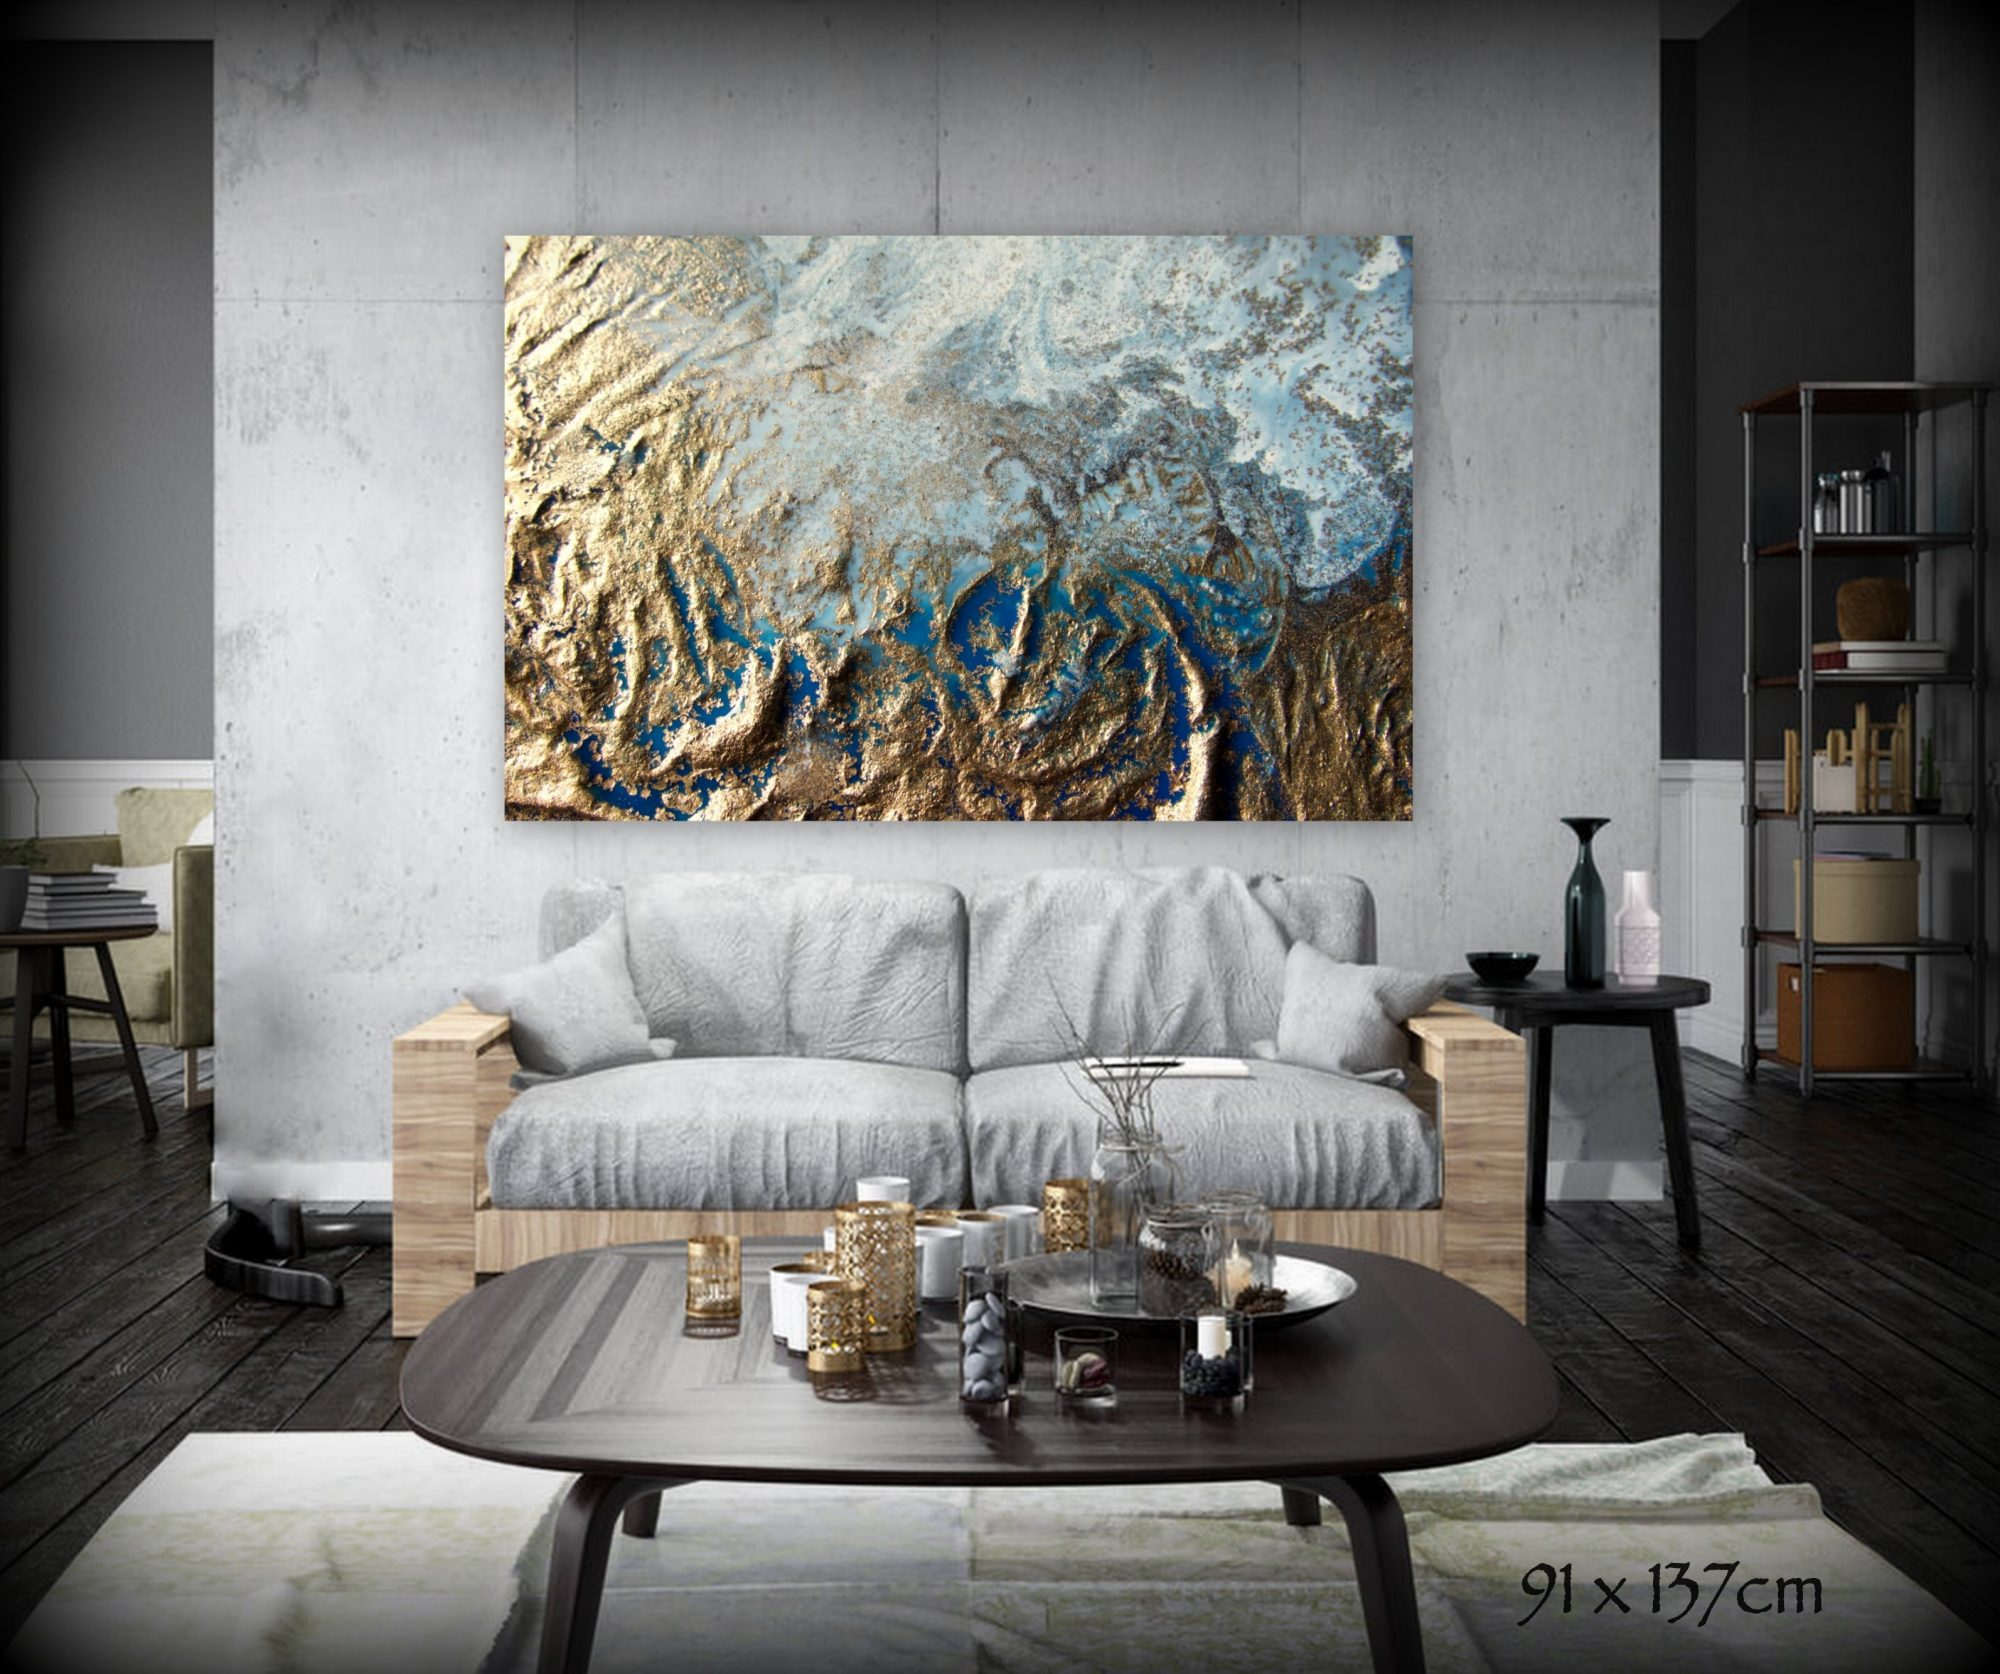 Gold Storm Canvas Art Print For Sale By Petra Meikle De Vlas1 2